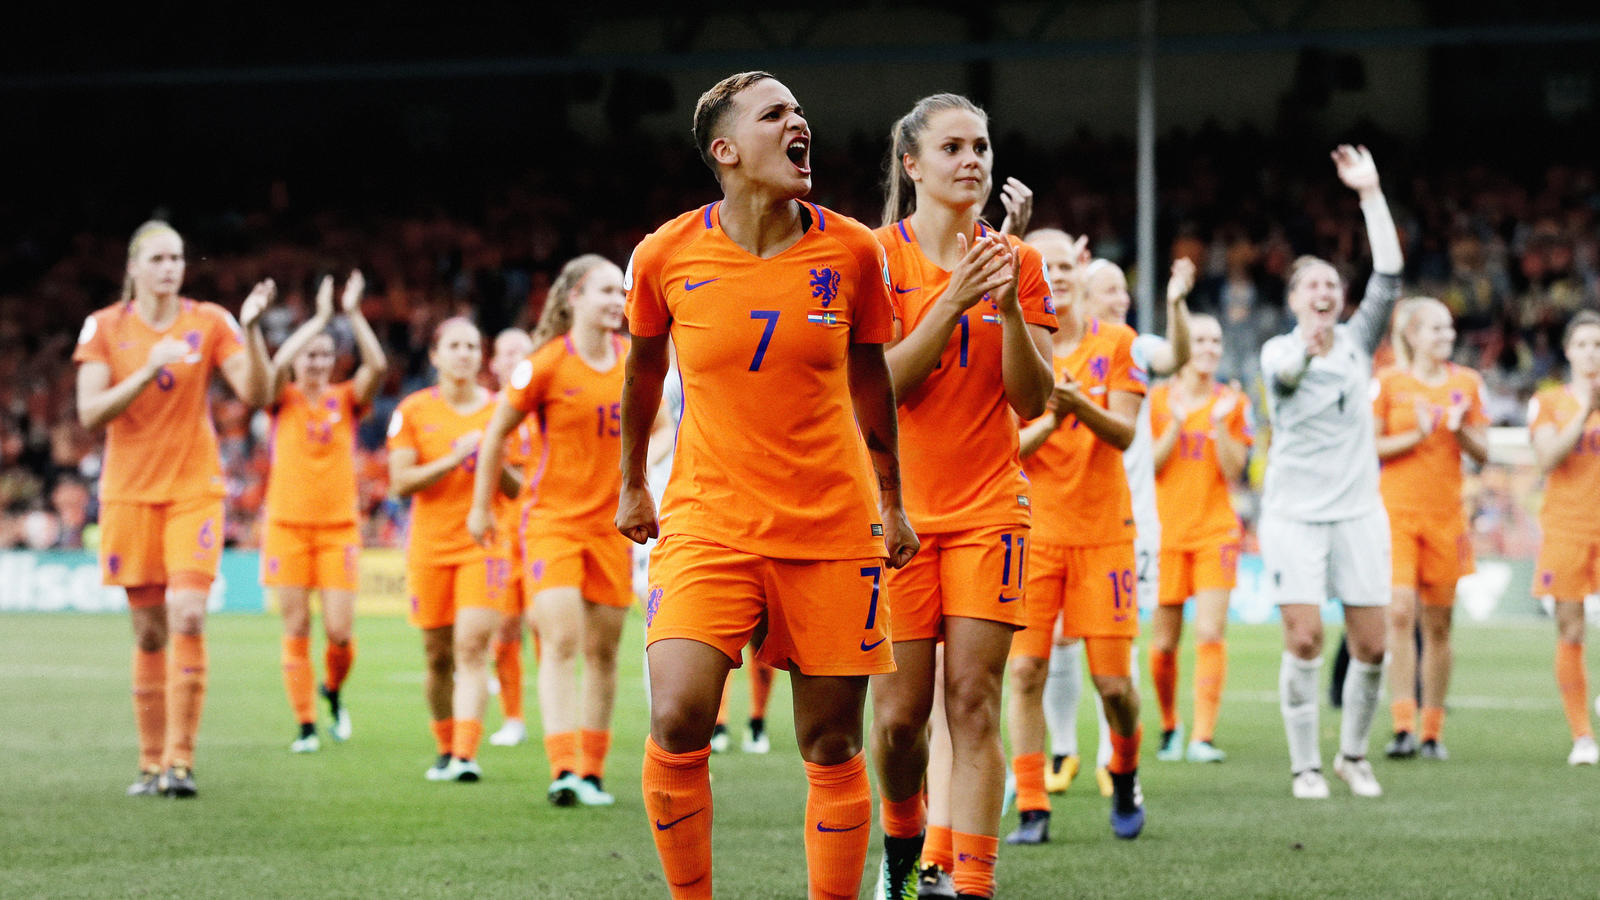 The Netherlands win their first major women's international tournament on home soil